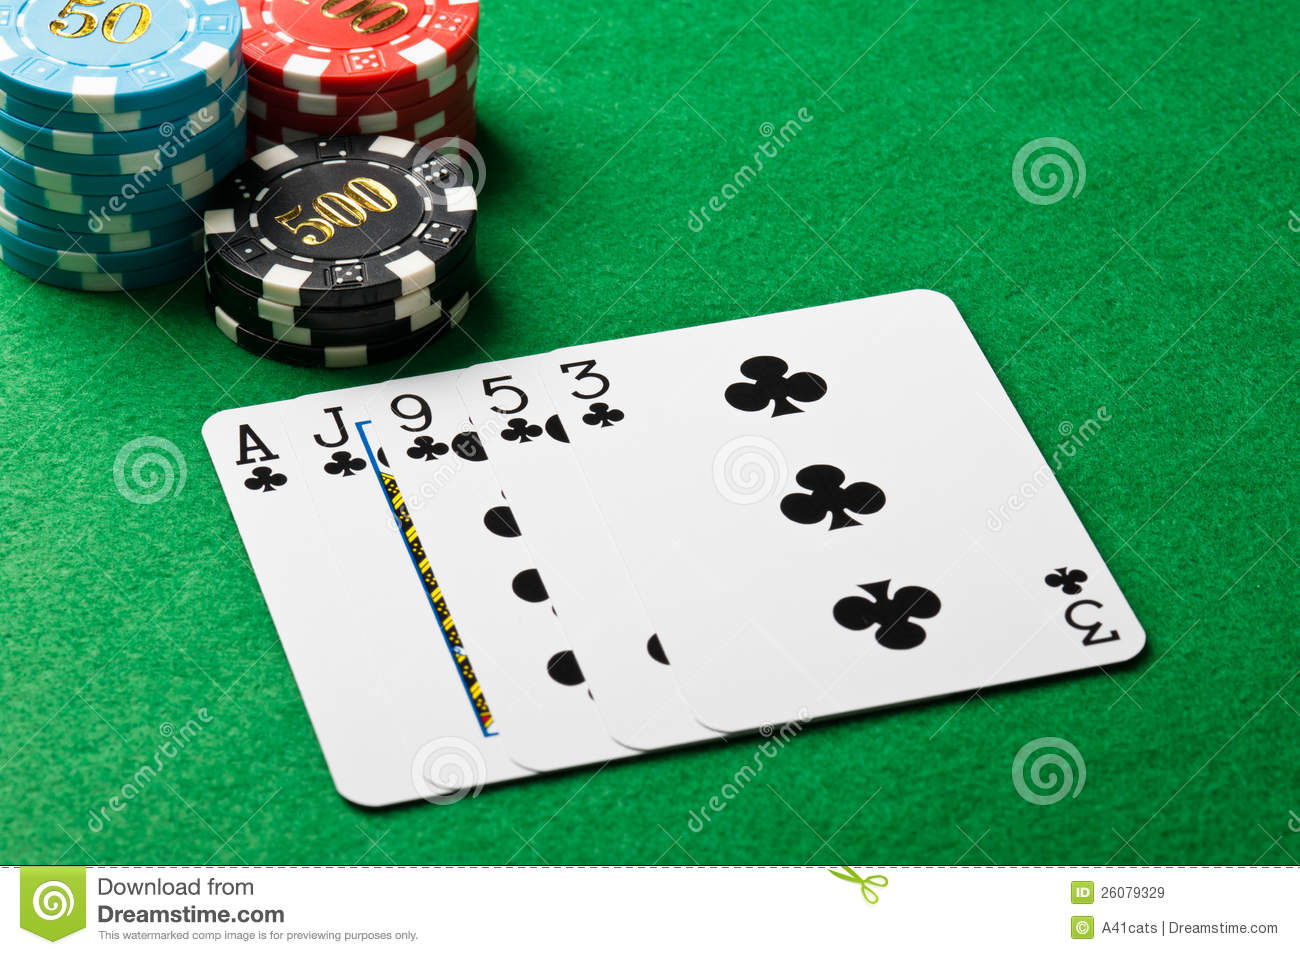 Top online casino entertainment